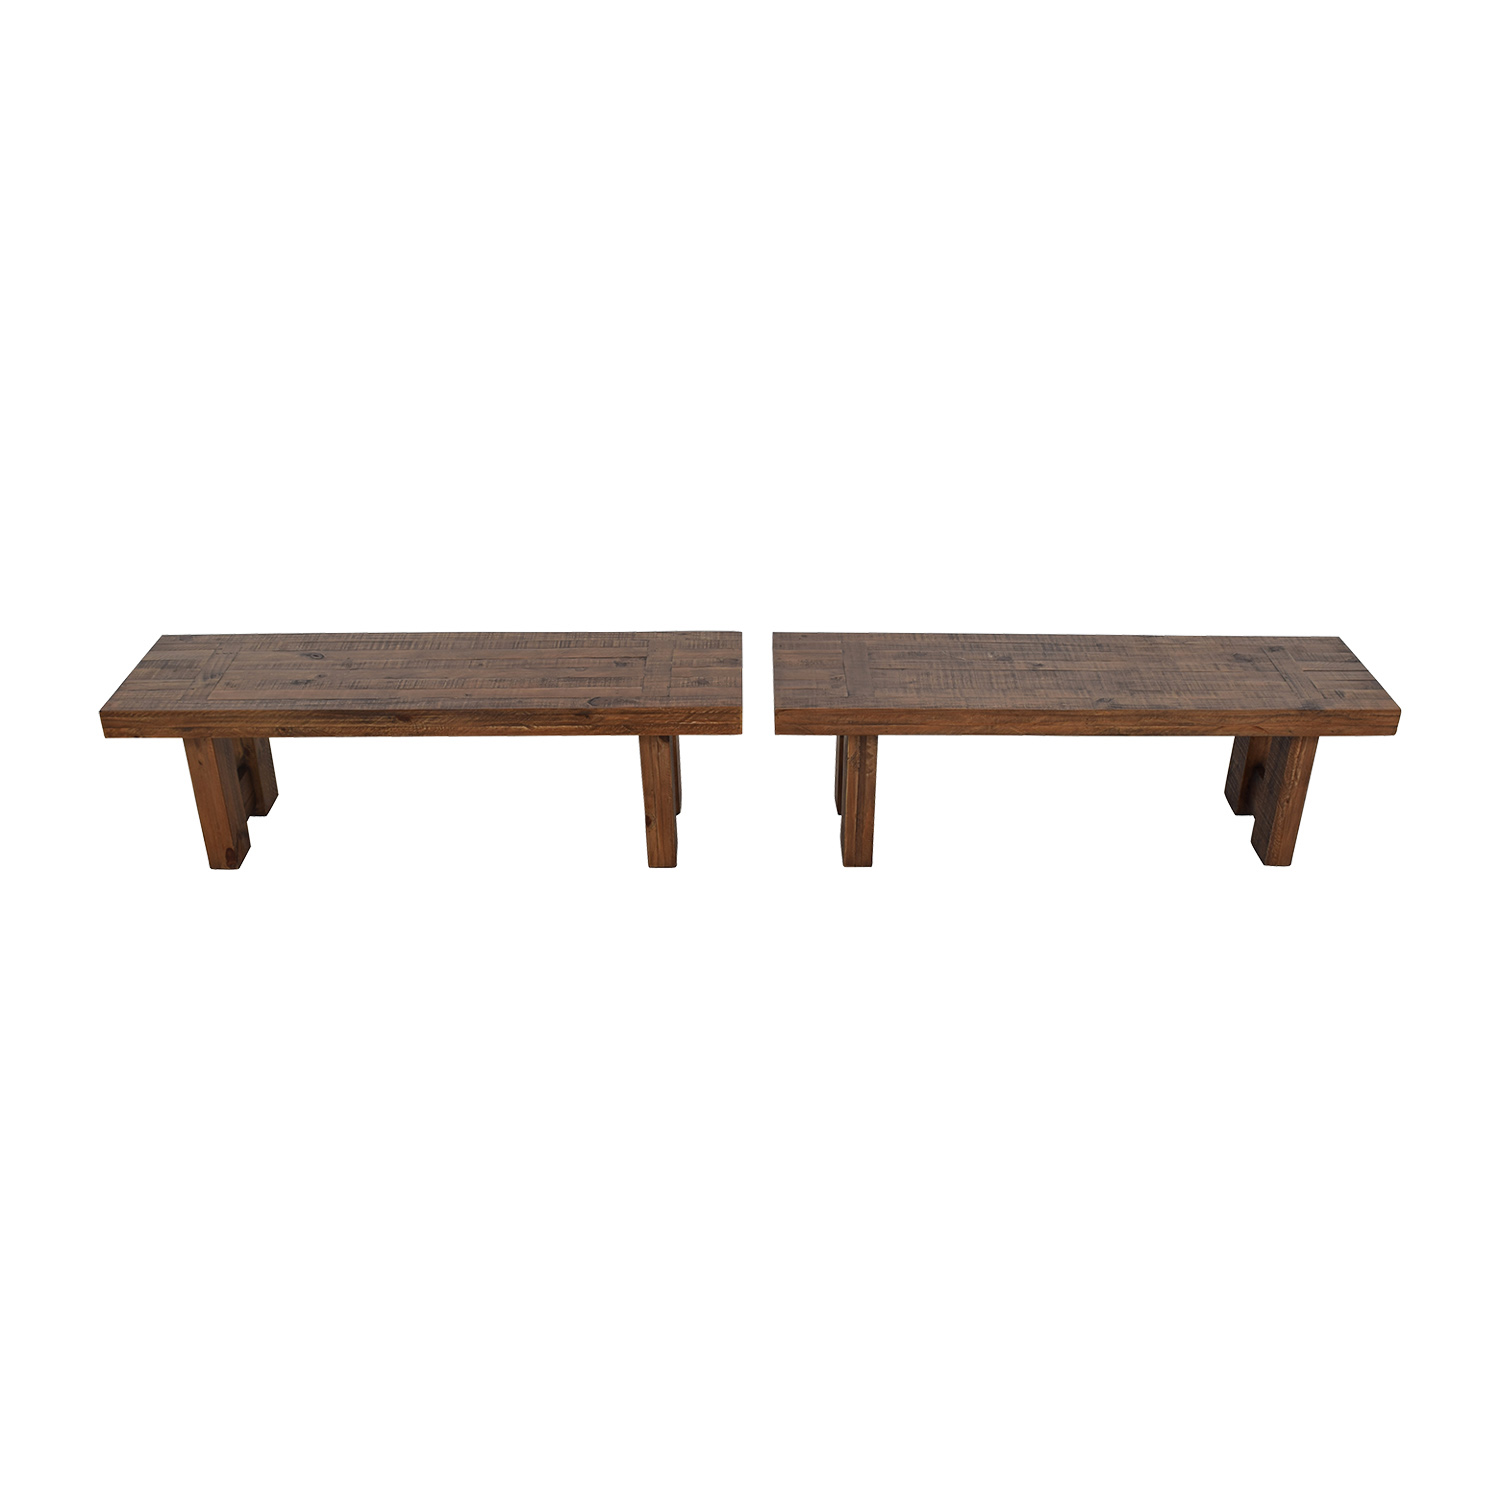 Jordans Furniture Jordans Furniture Acacia Rustic Wood Benches brown